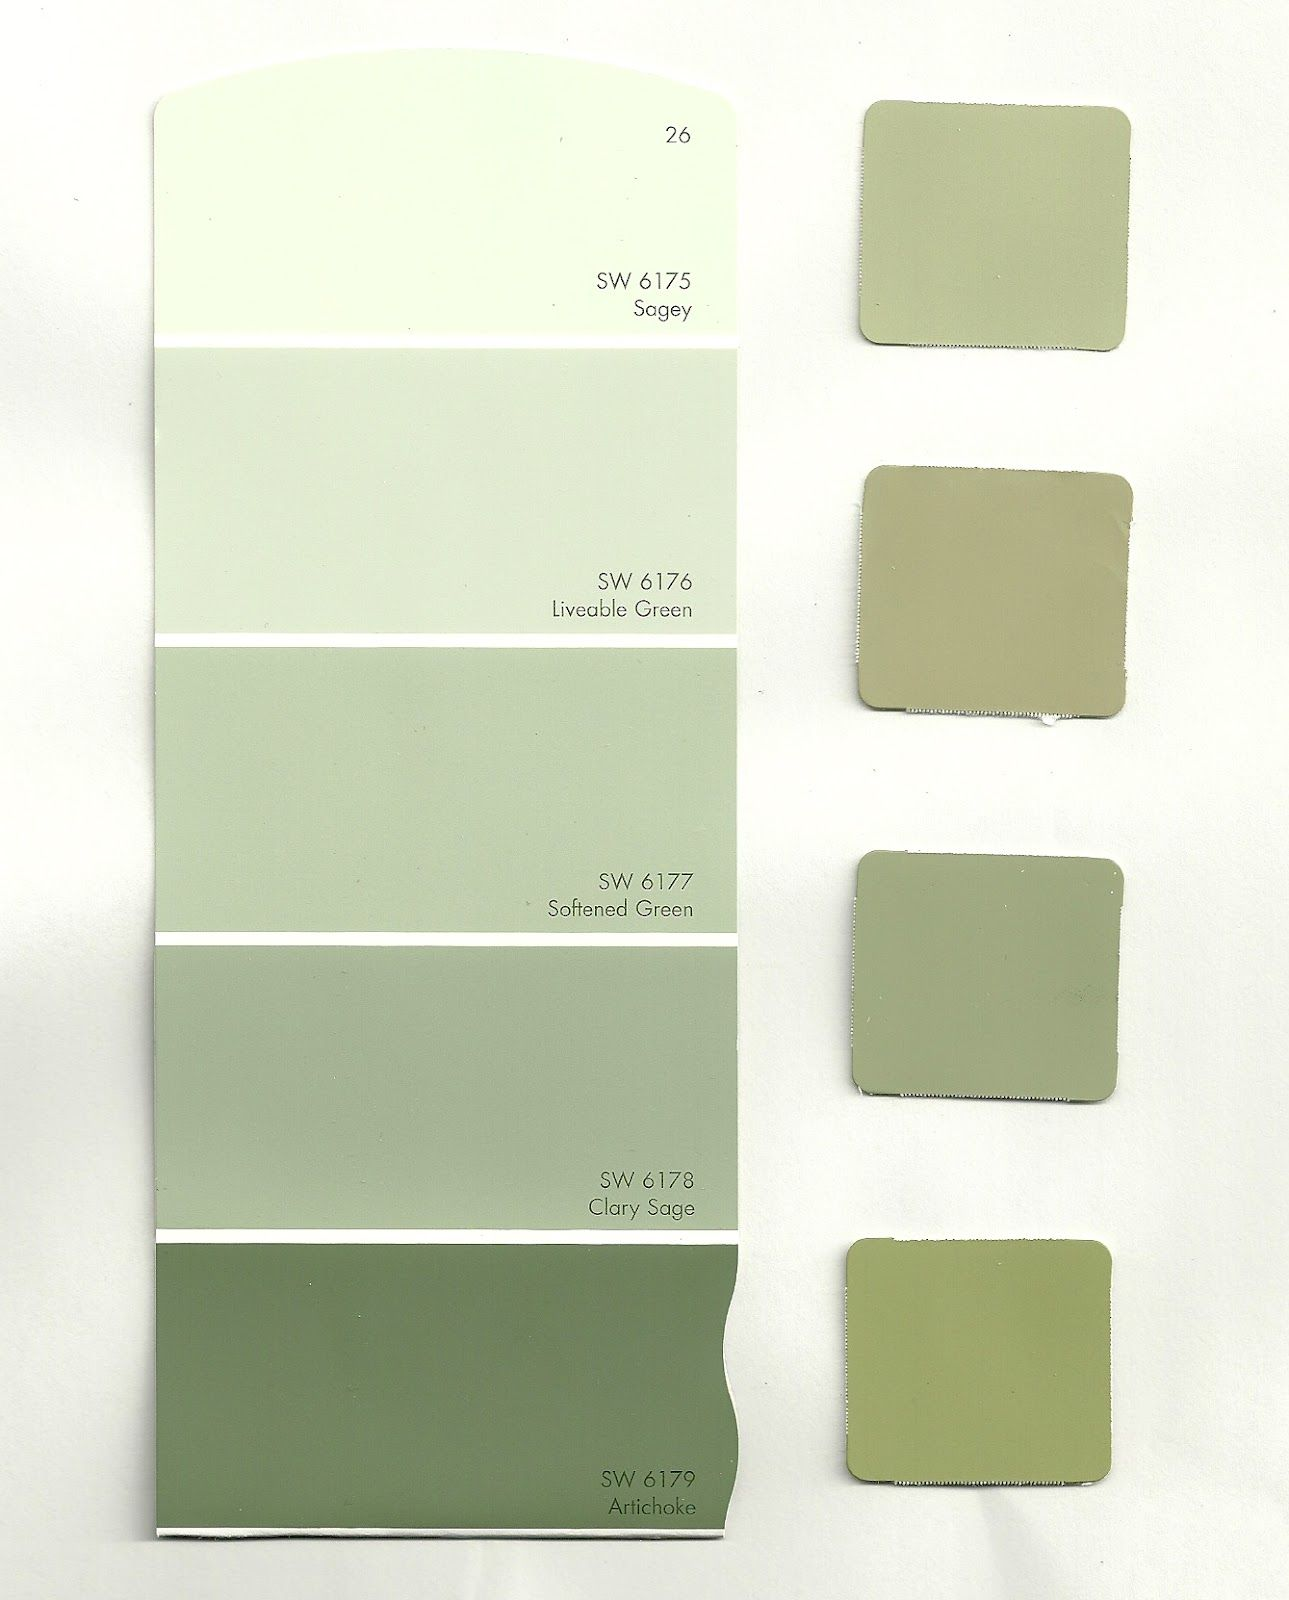 Brady 39 s room color ideas walls sage color yellow green Green wall color